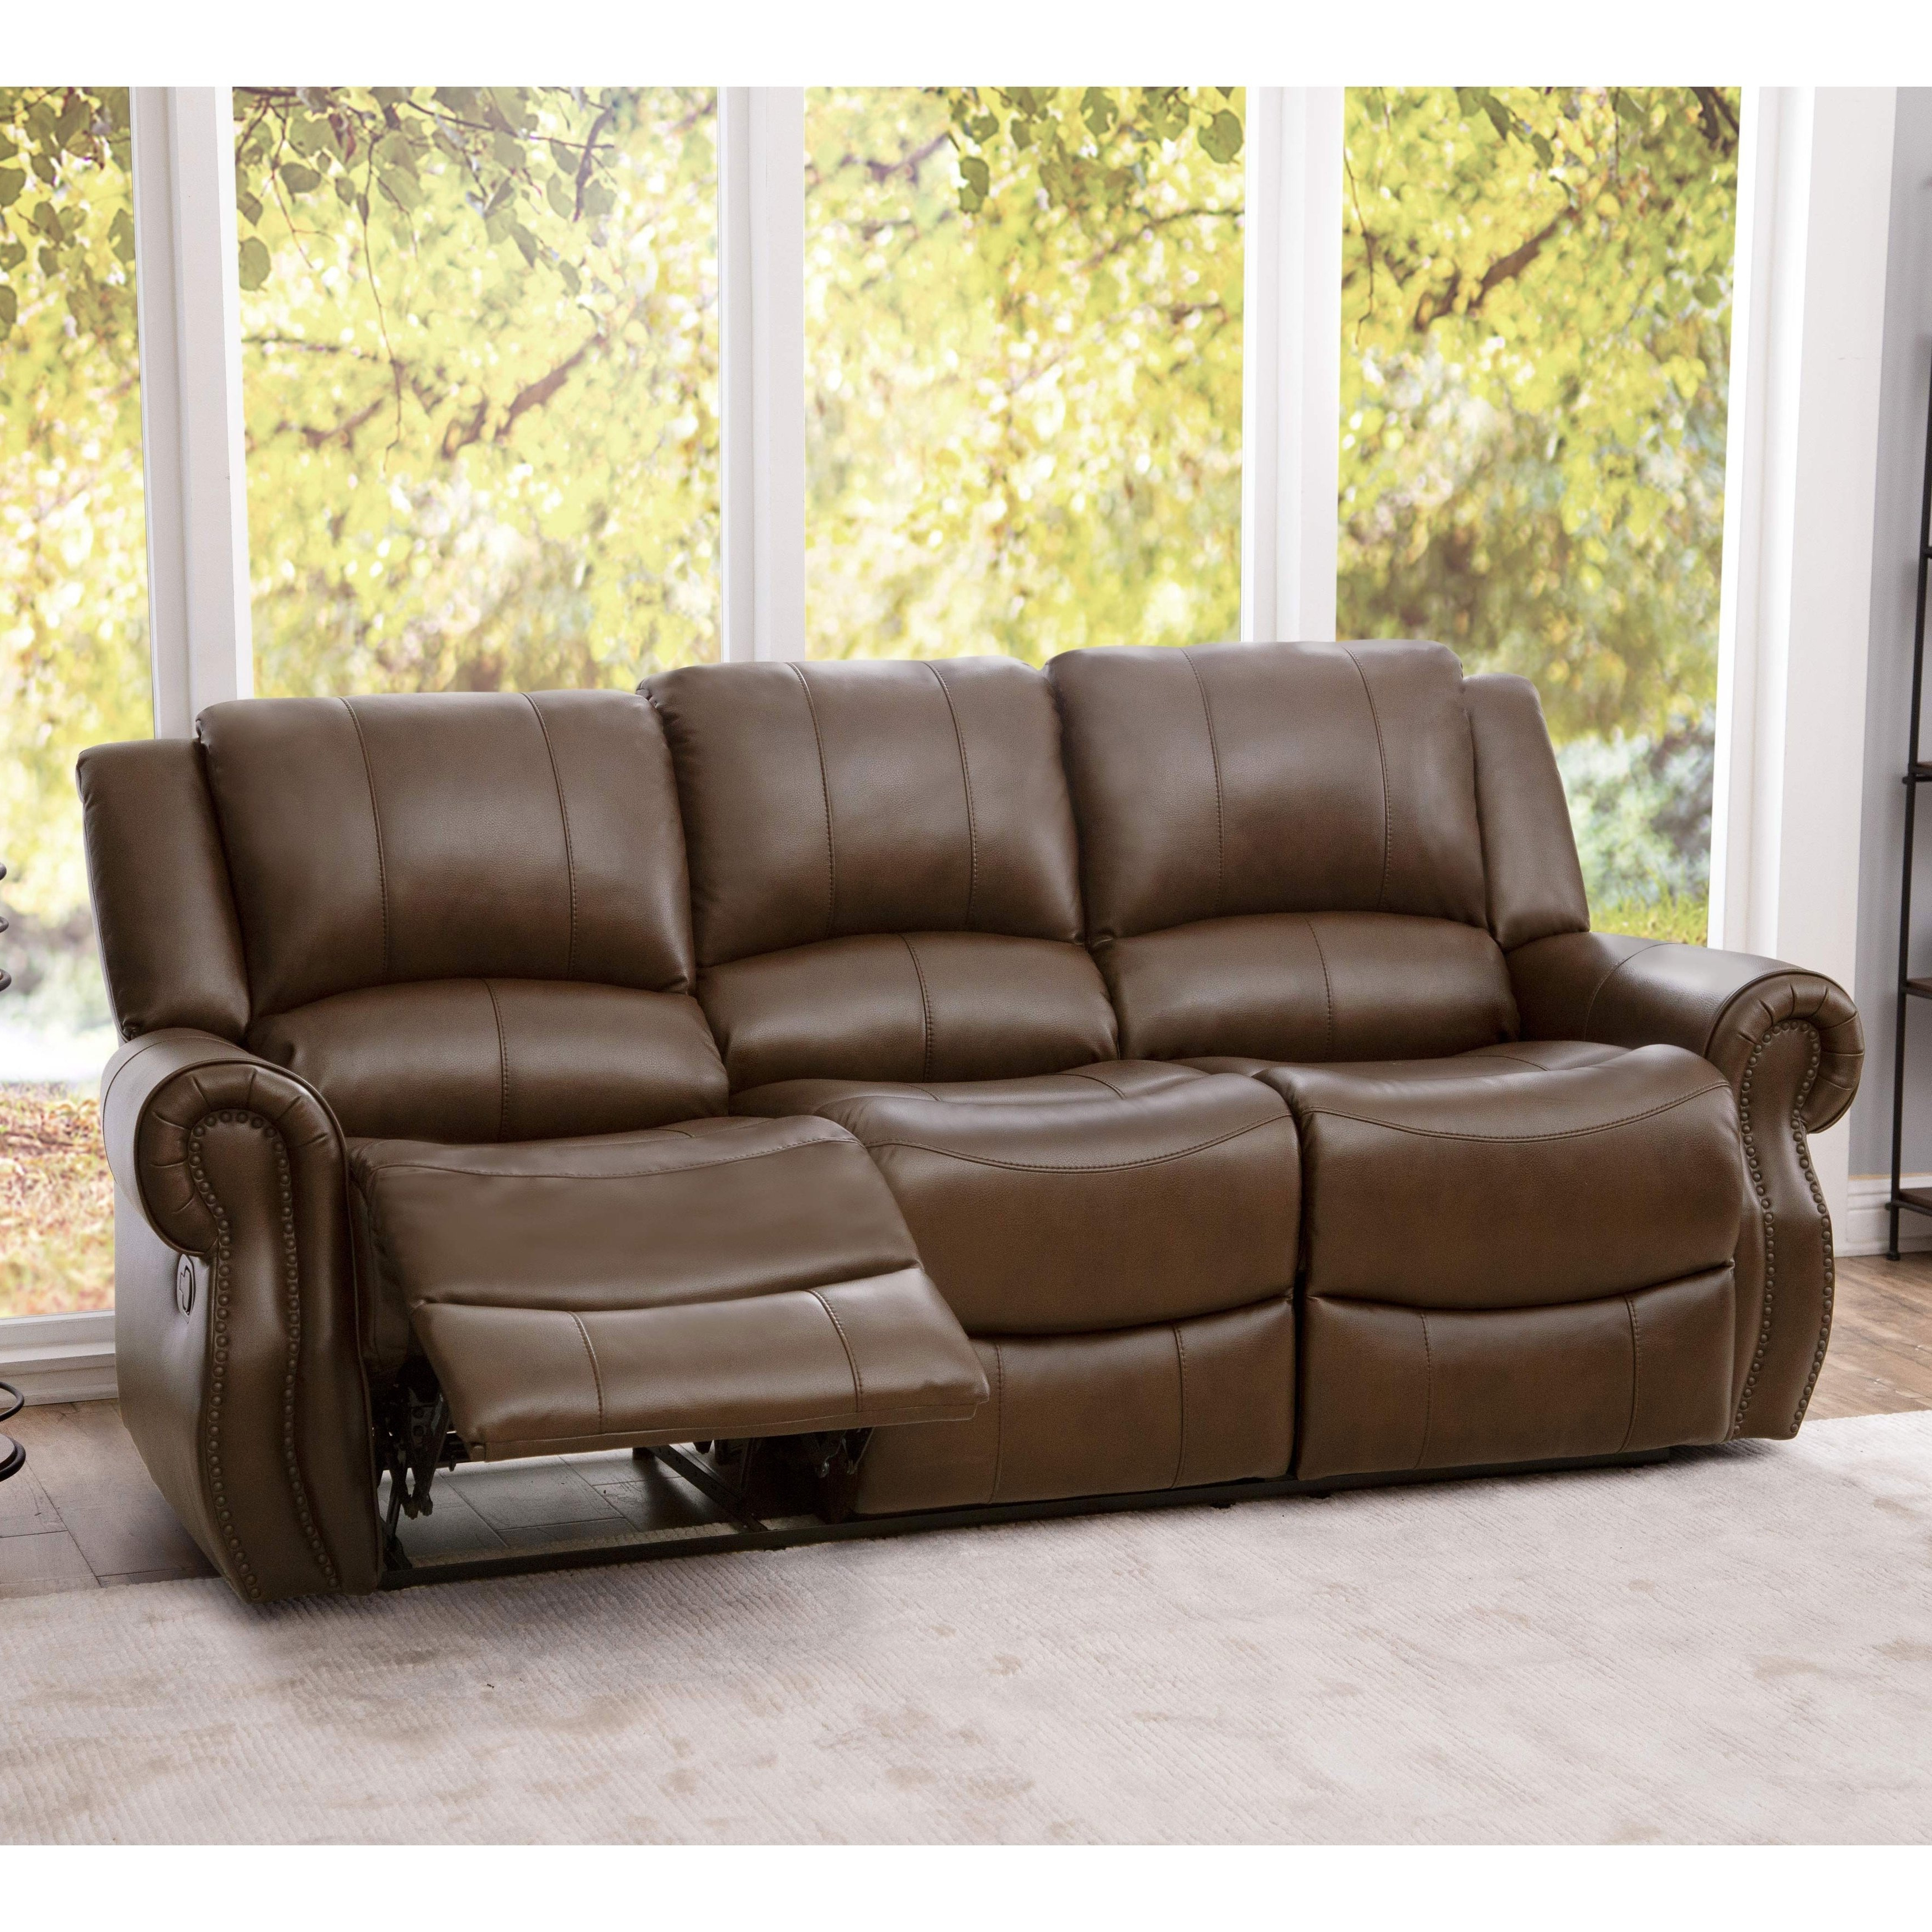 Shop Abbyson Calabasas Mesa Brown Leather Reclining Sofa – On Sale With Preferred Mesa Foam Oversized Sofa Chairs (View 10 of 20)